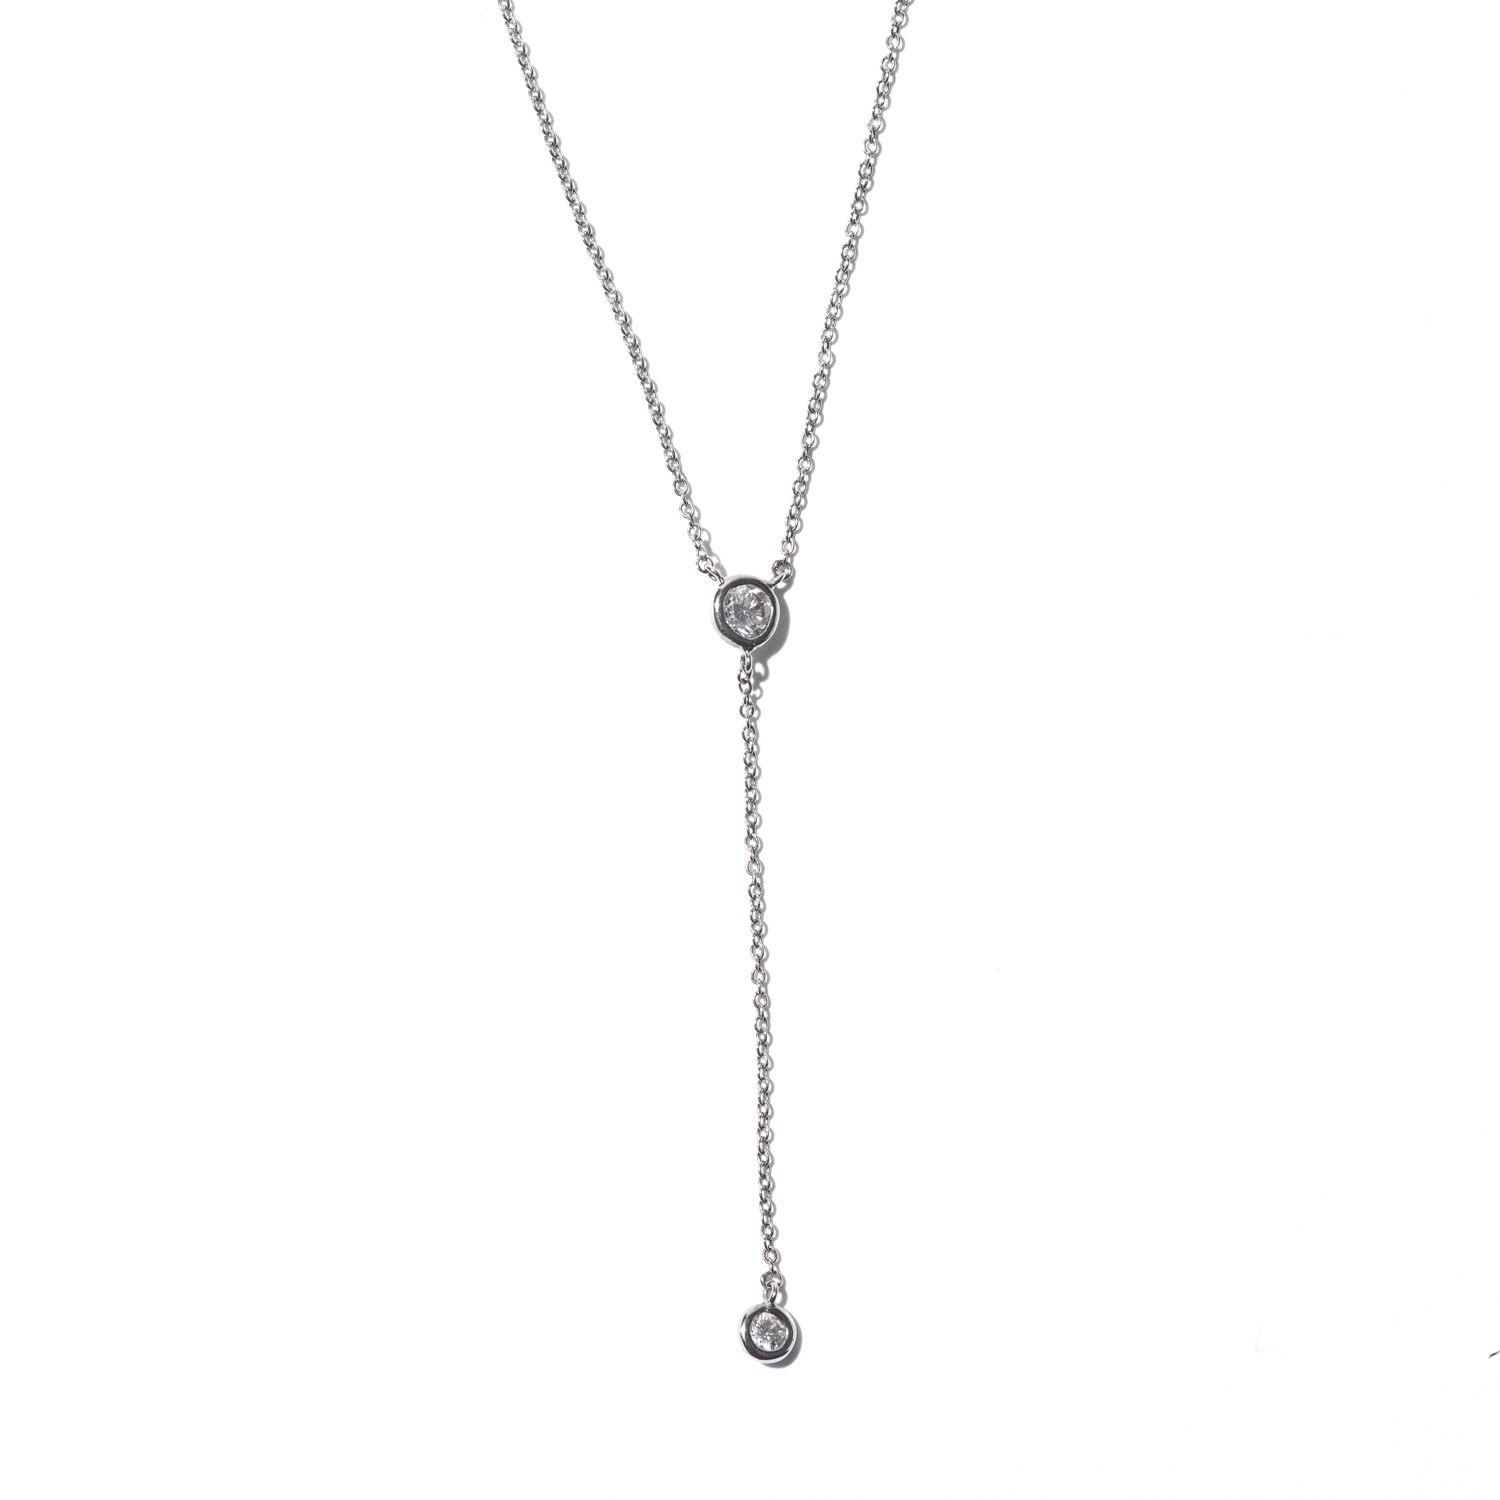 Design Fourteen. - Diamond Pendent with Diamond Pendent Charm